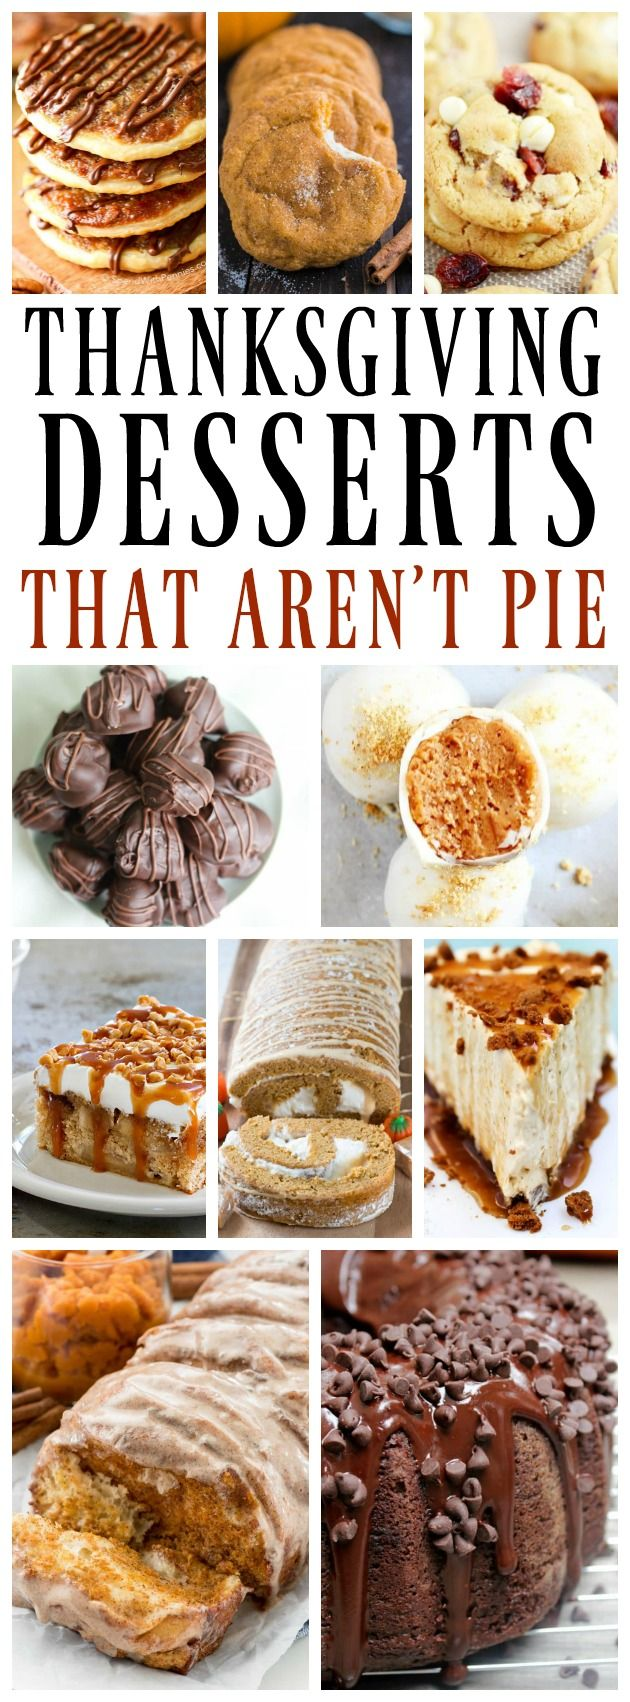 25 Thanksgiving Desserts That Are Not Pie #thanksgivingdesserts